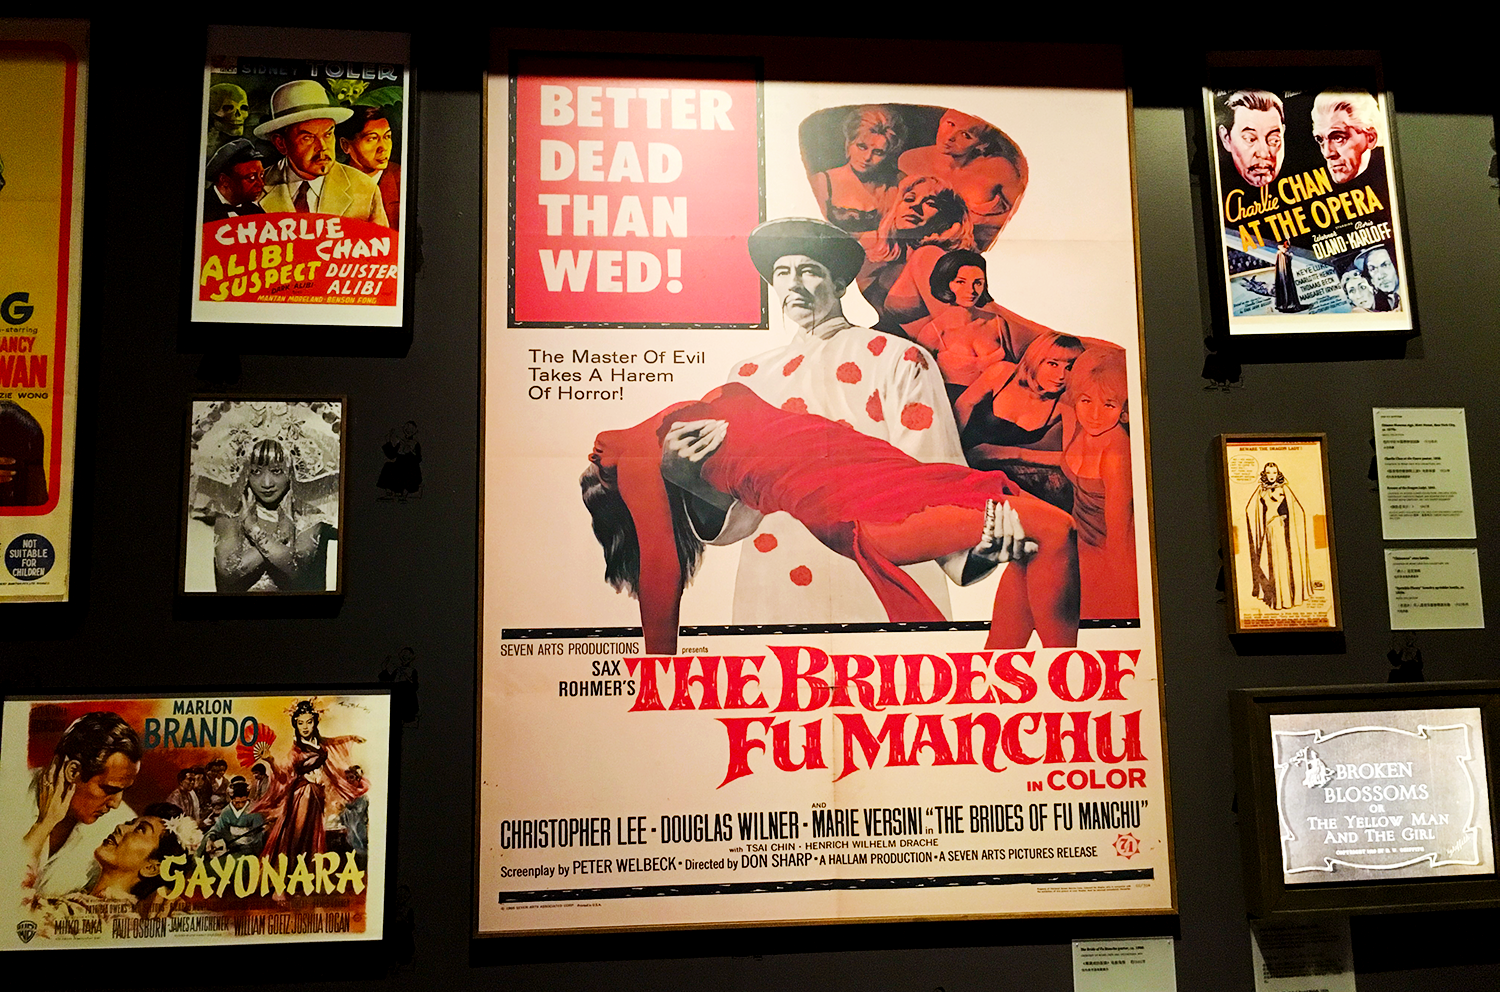 Museum of Chinese in America, Chinatown - NYC - Orientalism and Yellowface in Hollywood